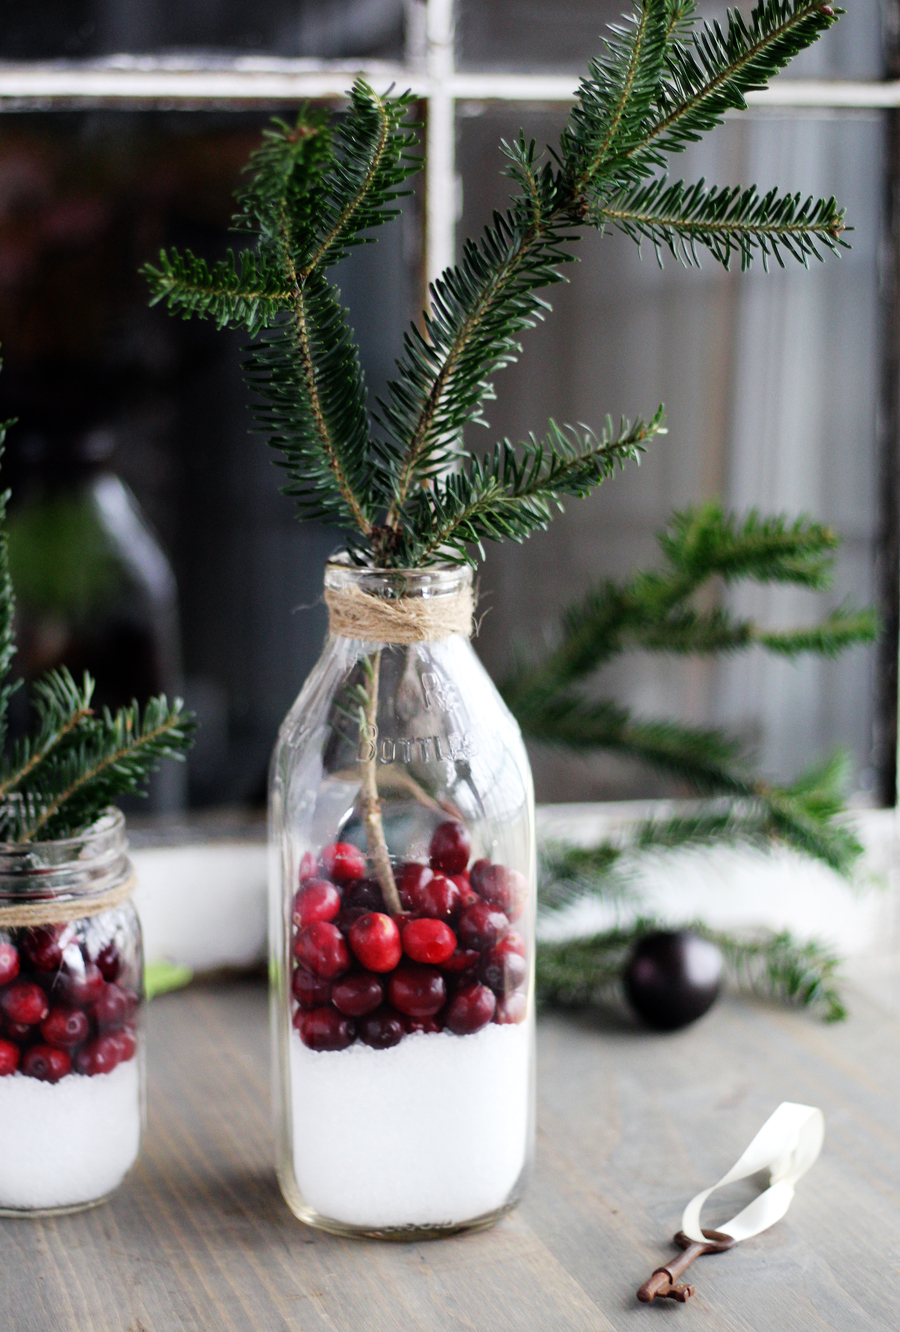 use jars milk bottles or any container youd like for this rustic - Rustic Christmas Decor